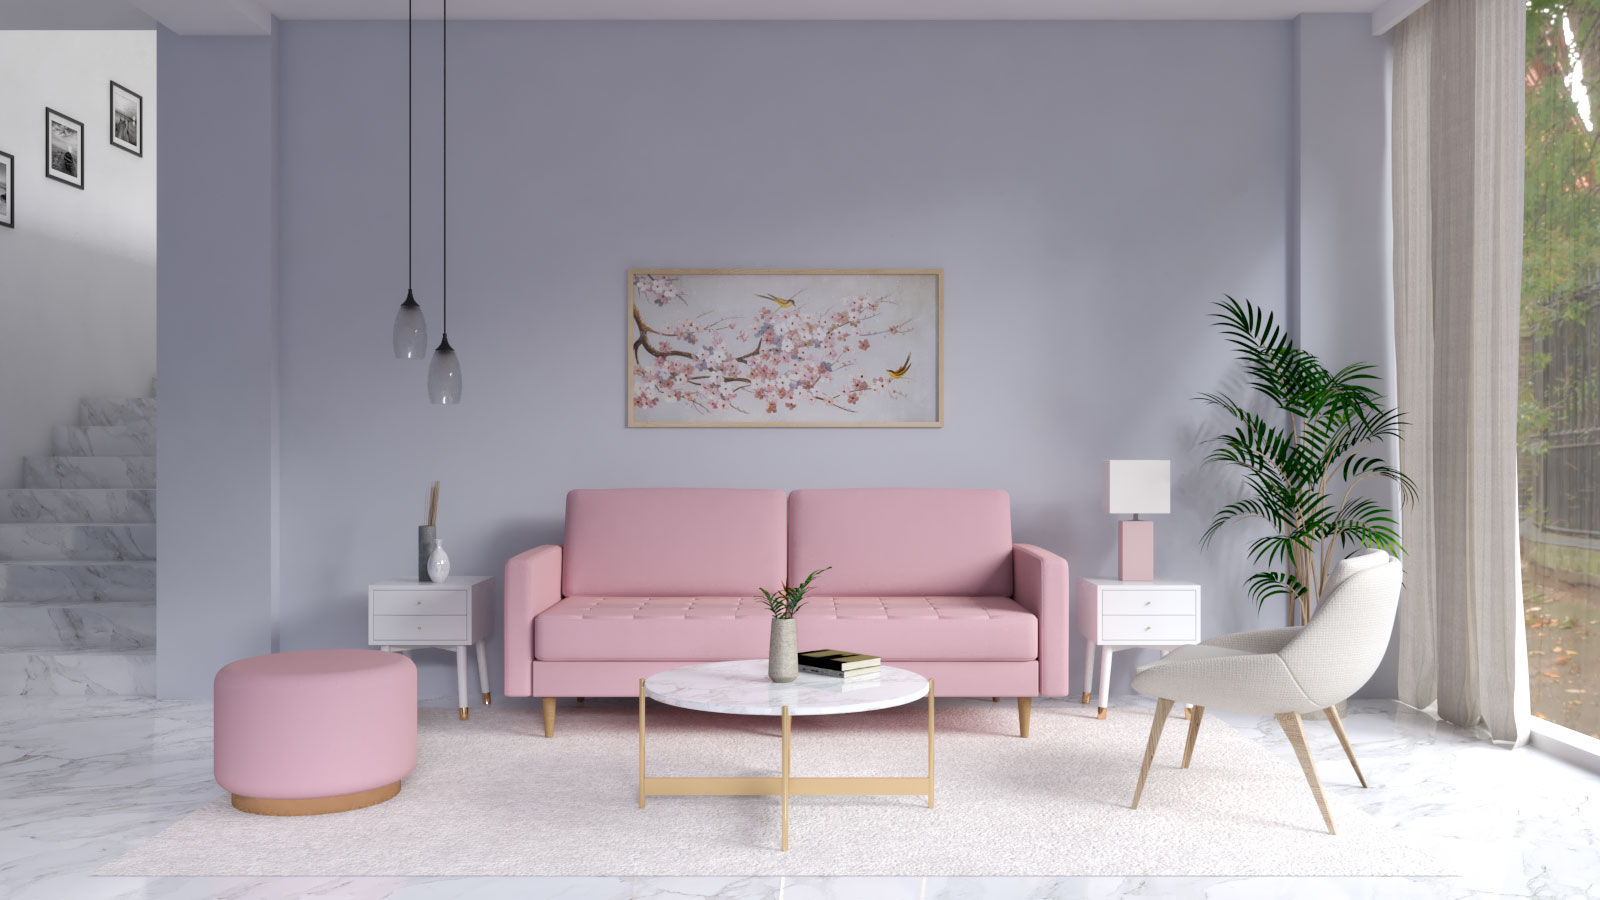 Silverish gray wall with pink furniture